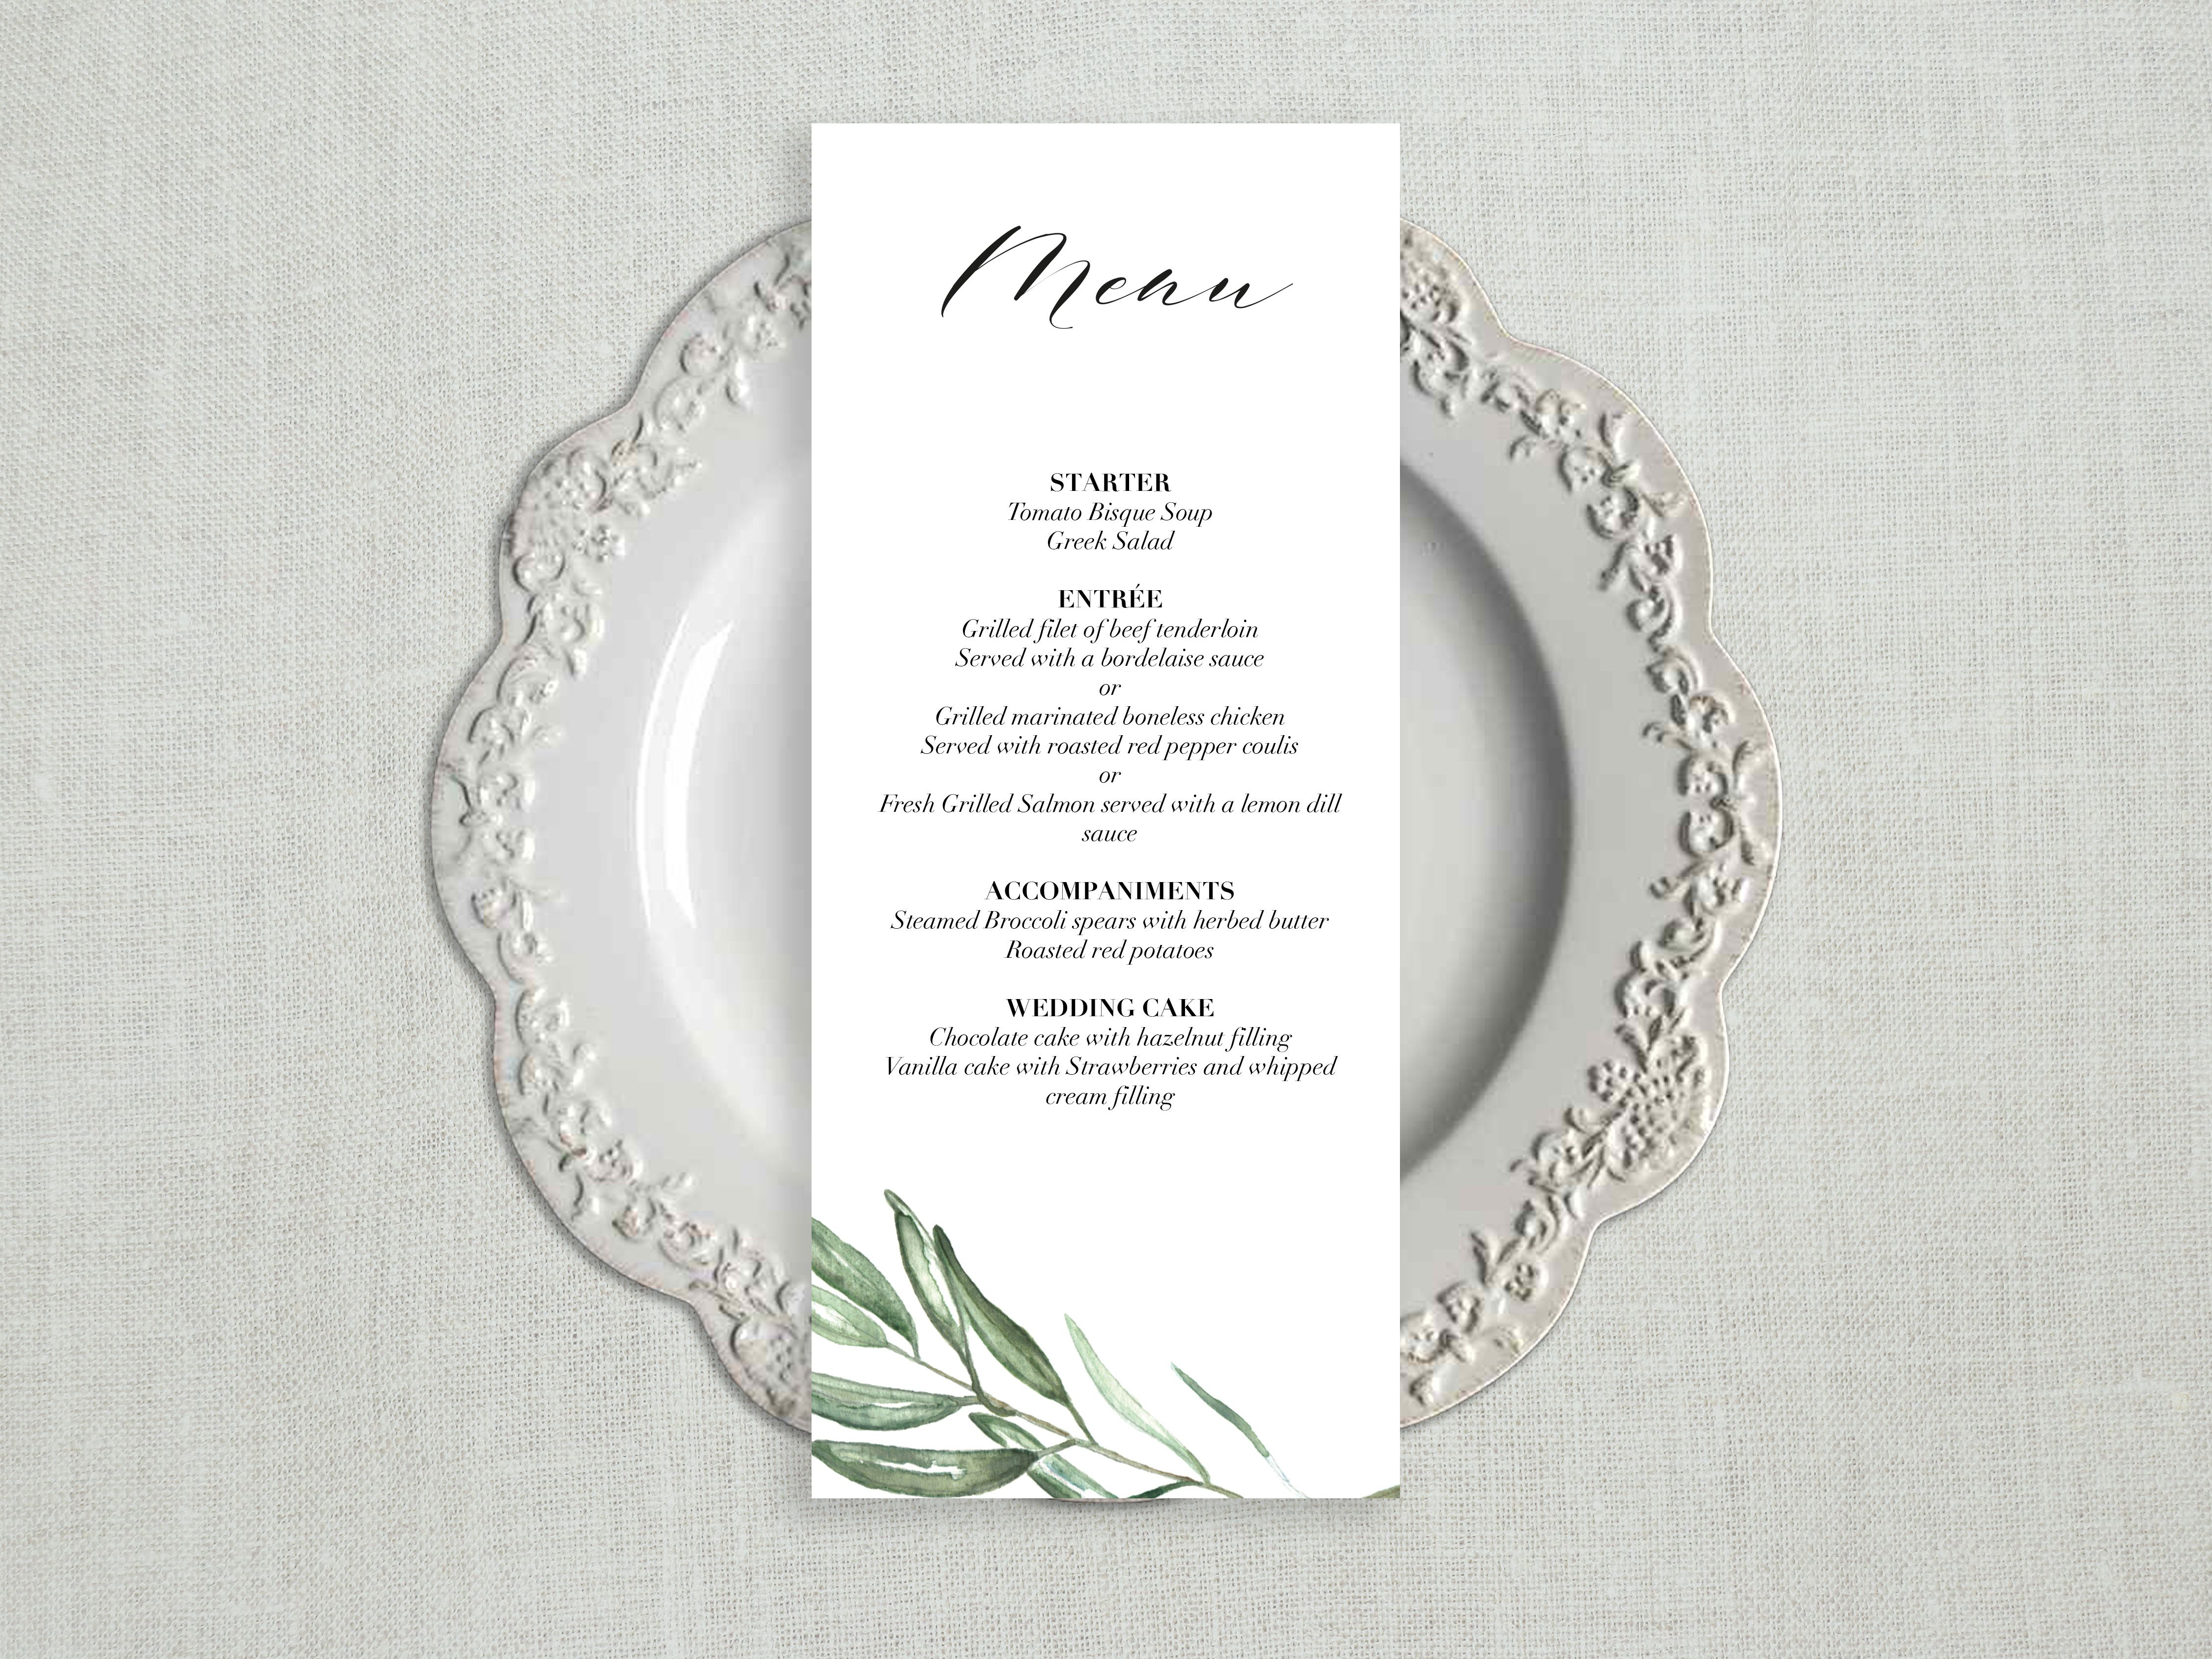 Wedding Menu Template.Greenery Wedding Menu Template Wedding Menu Cards Wedding Menu Sign Wedding Menu Printable